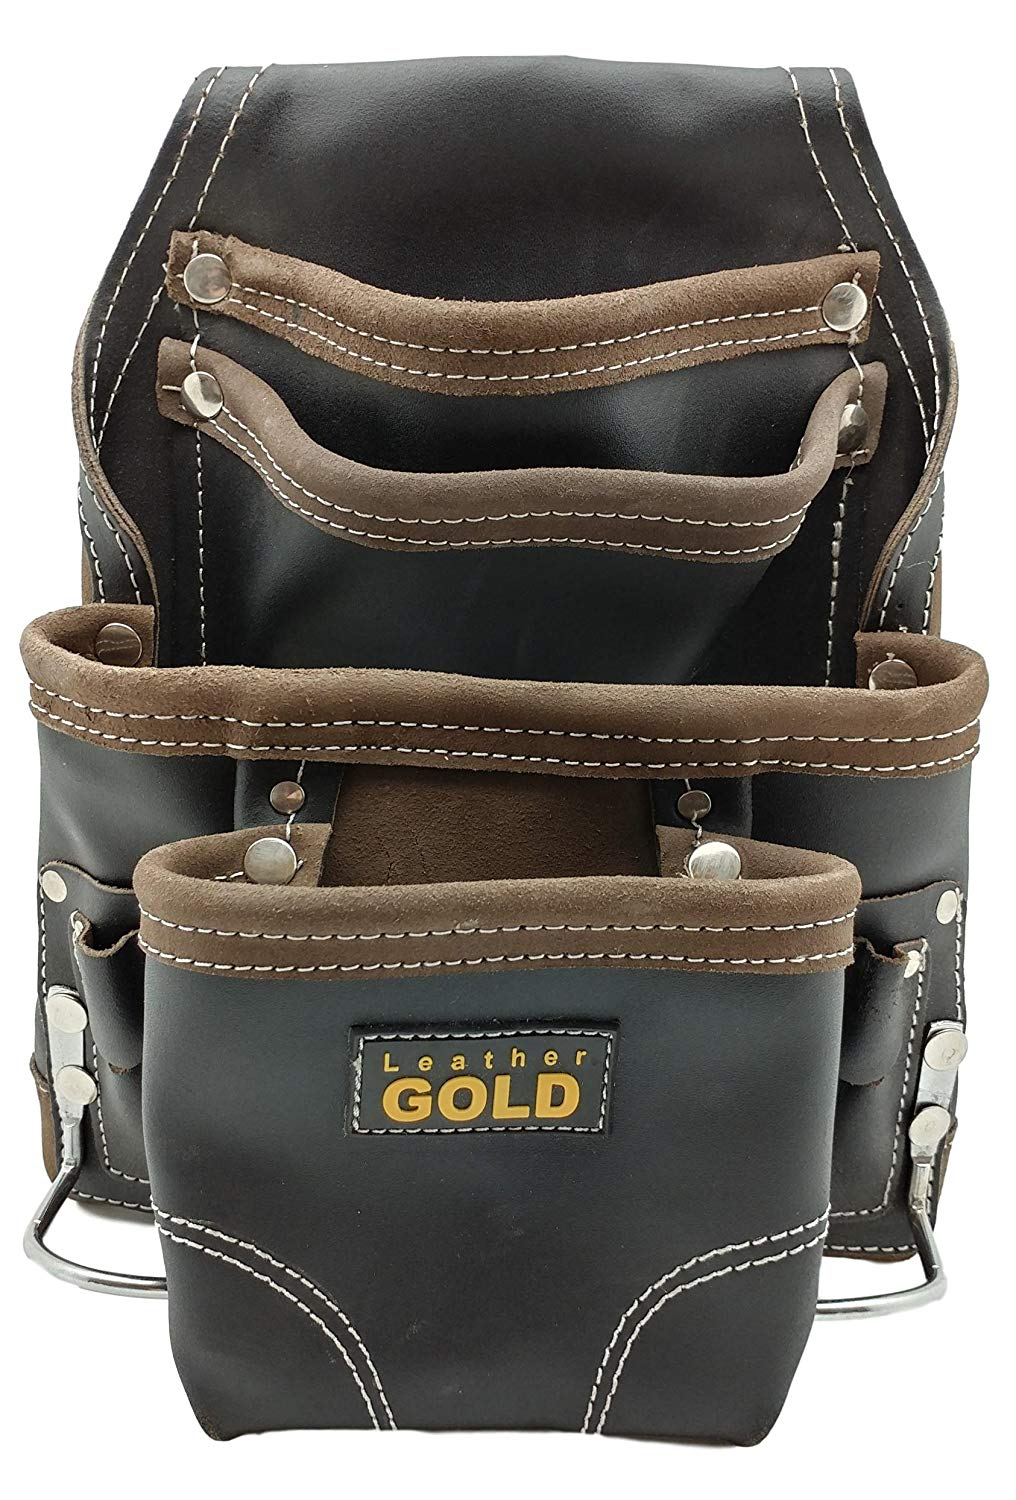 Leather Gold Heavy Duty Tool Pouch | Carpenters Tool Pouch 3150, Black, Oil-Tanned, 10 Pockets, 2 Hammer Holders, Reinforced Seams